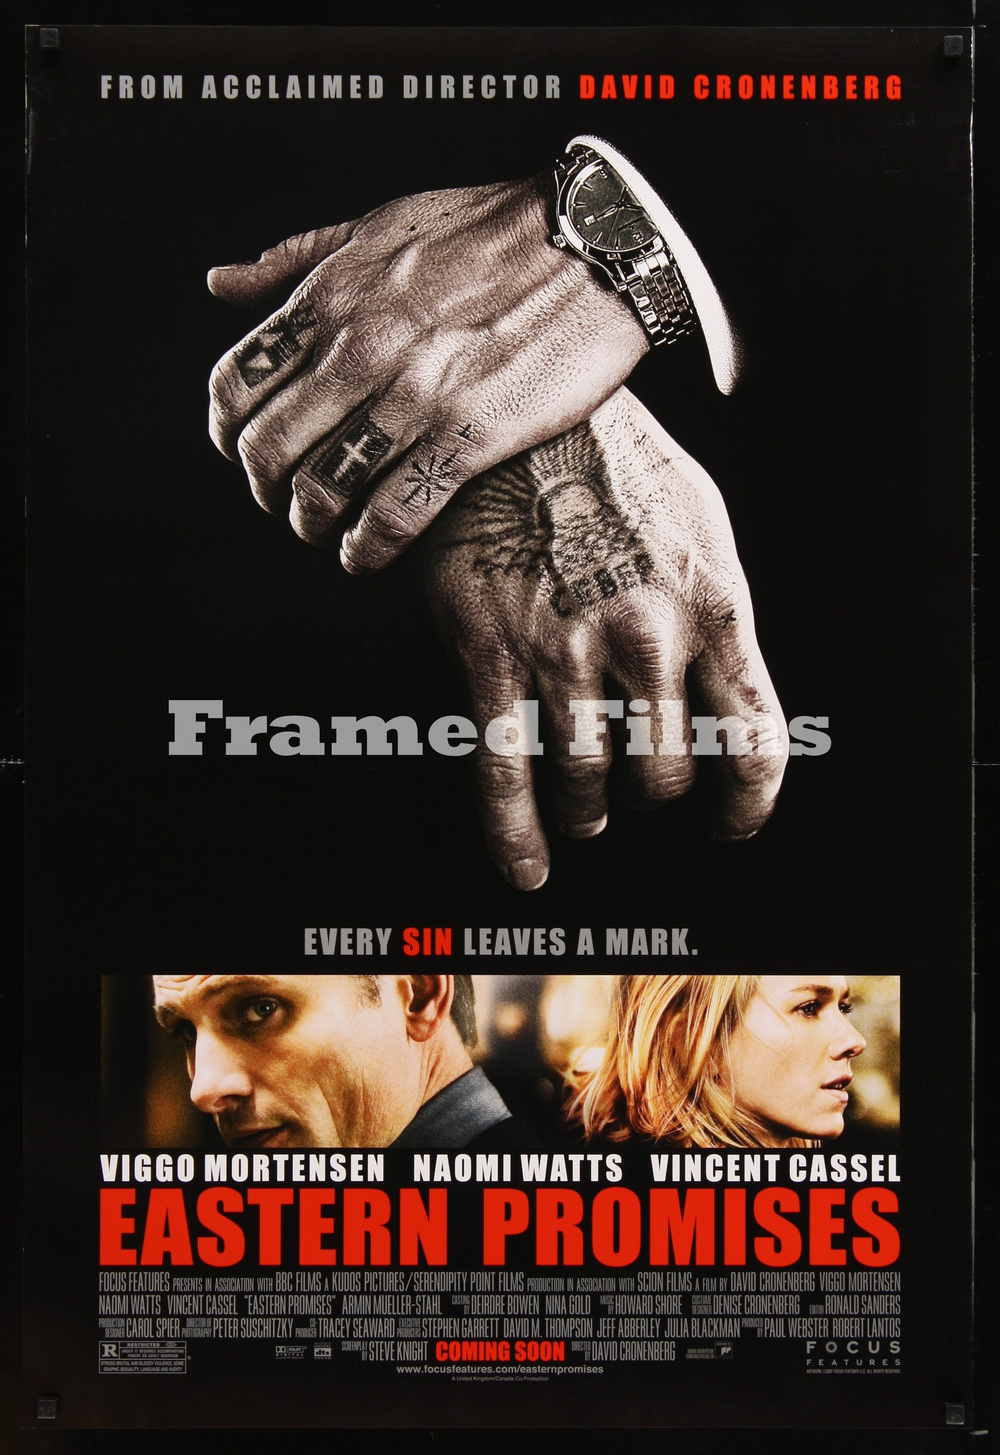 eastern_promises_advance_MF00571_L.jpg